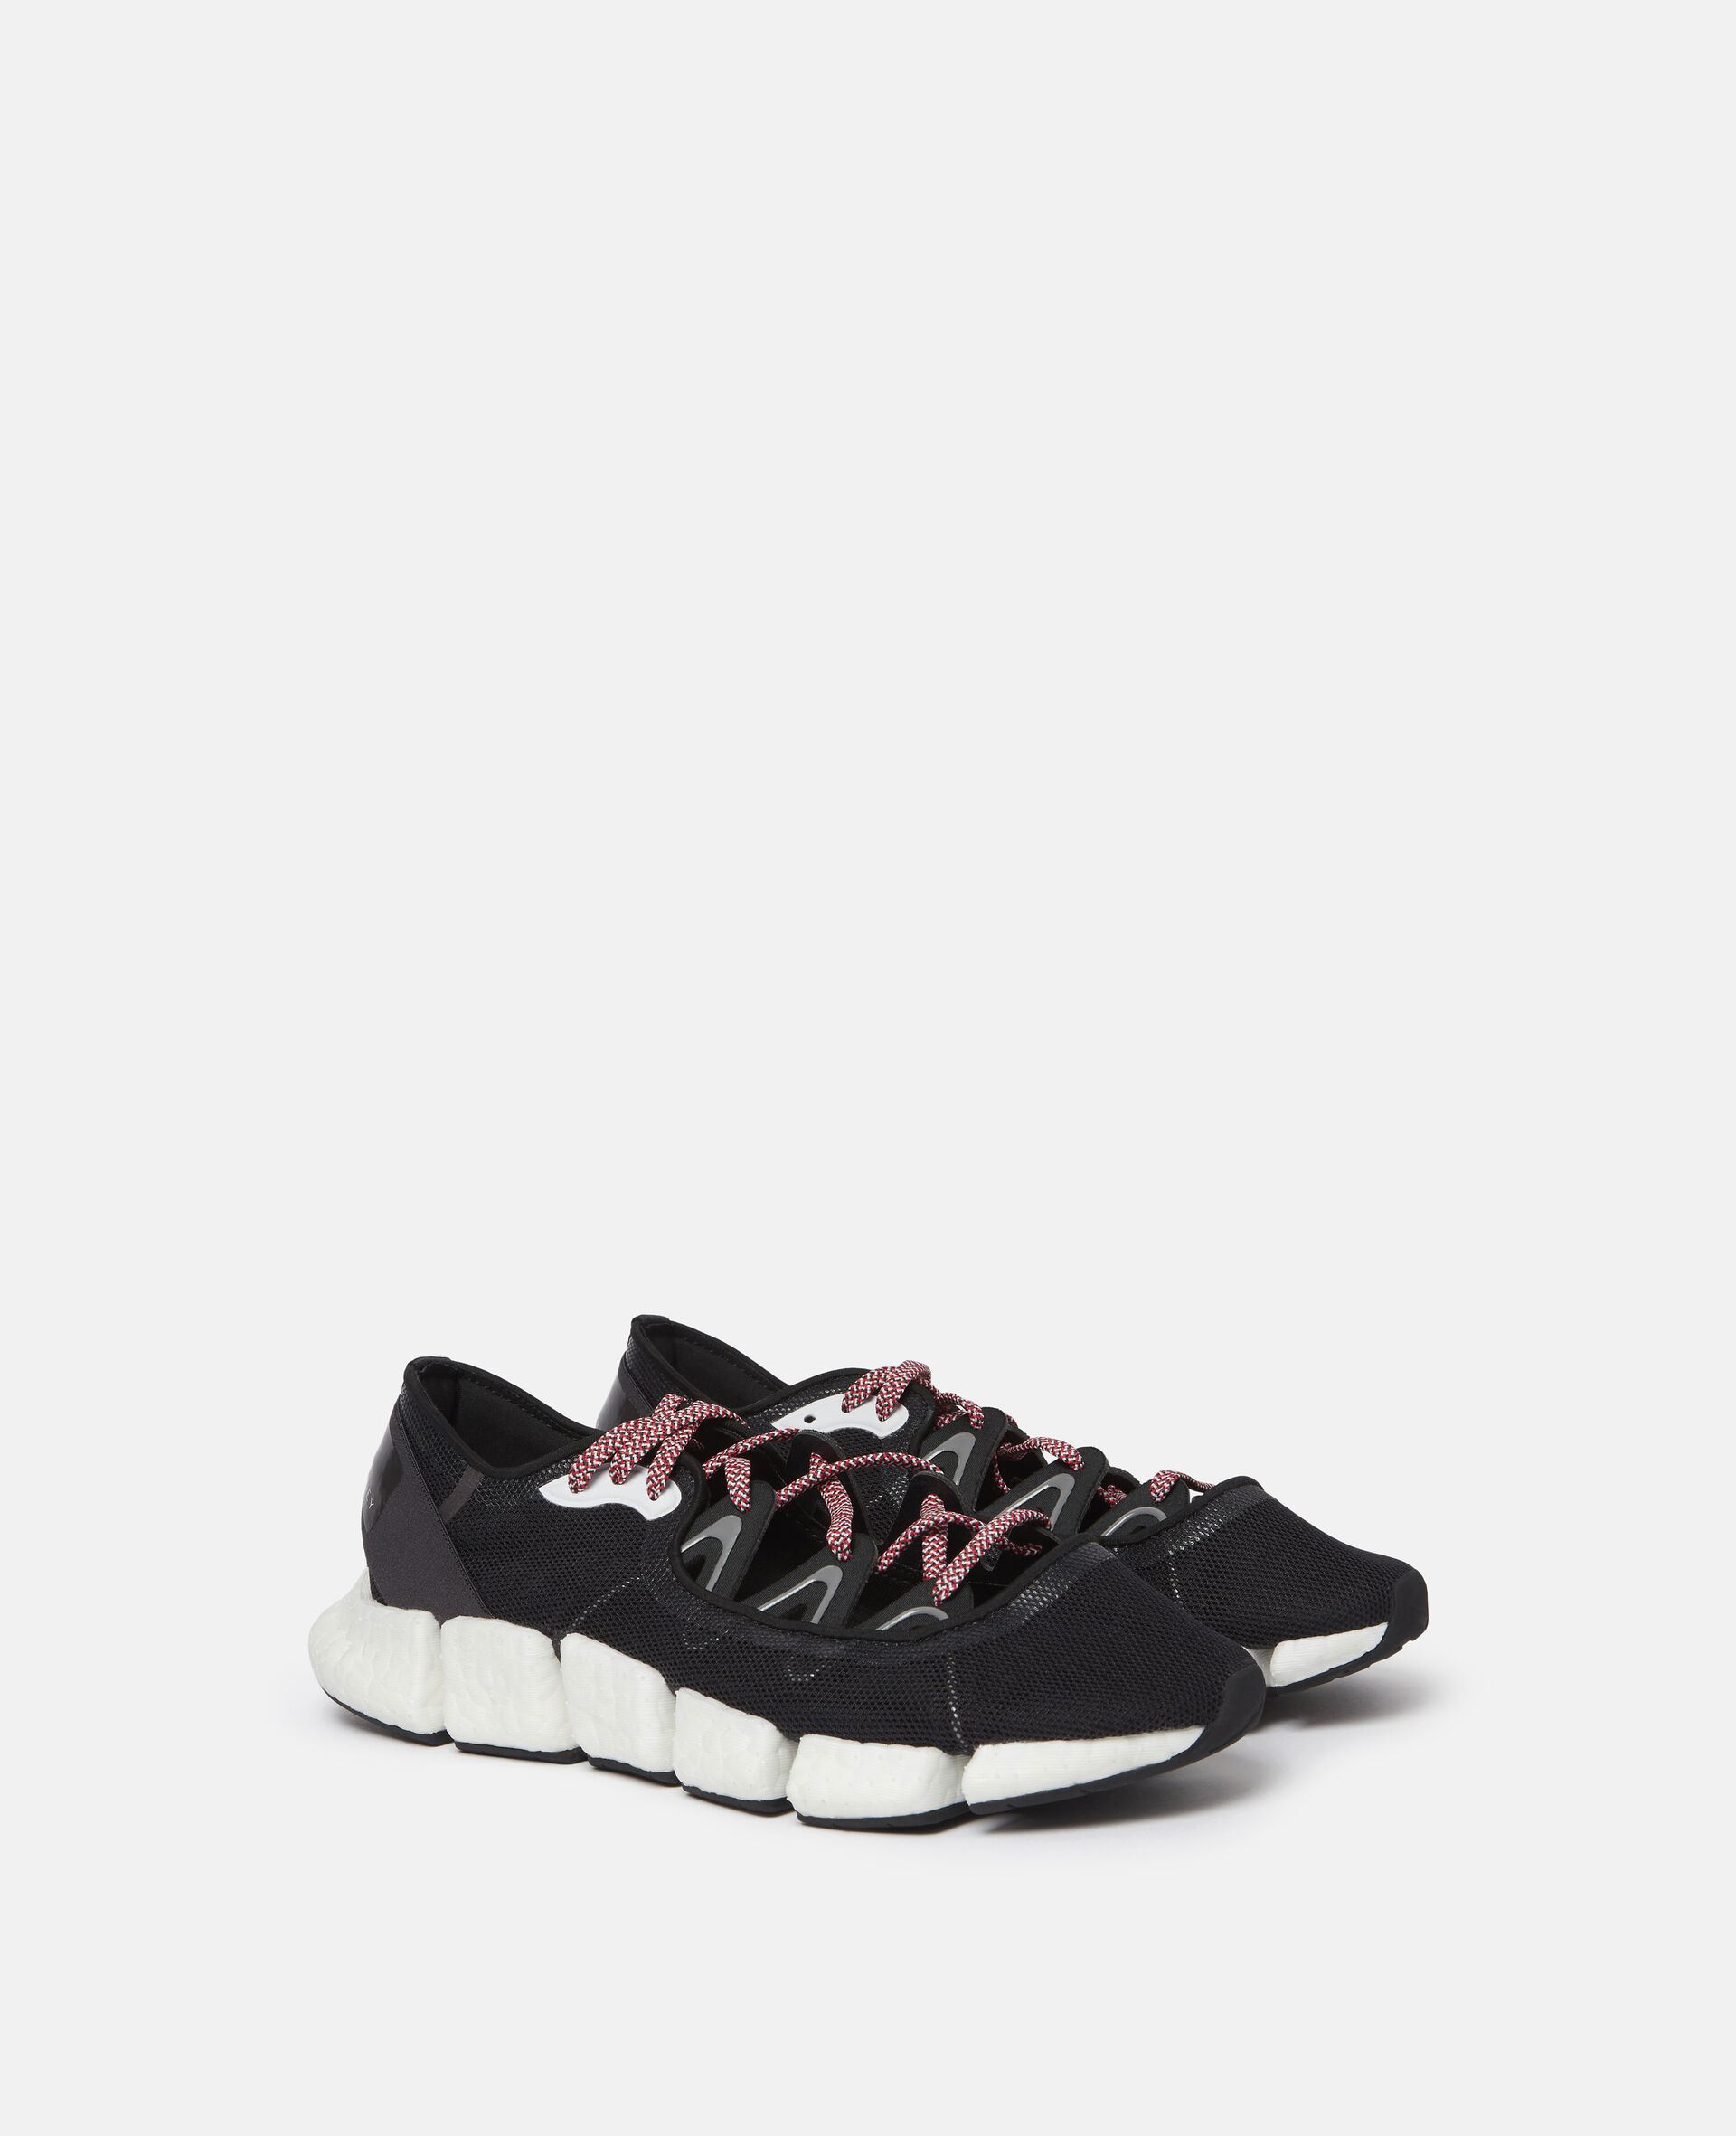 Climacool Vento 3-in-1 Running Sneakers-Multicolour-large image number 1